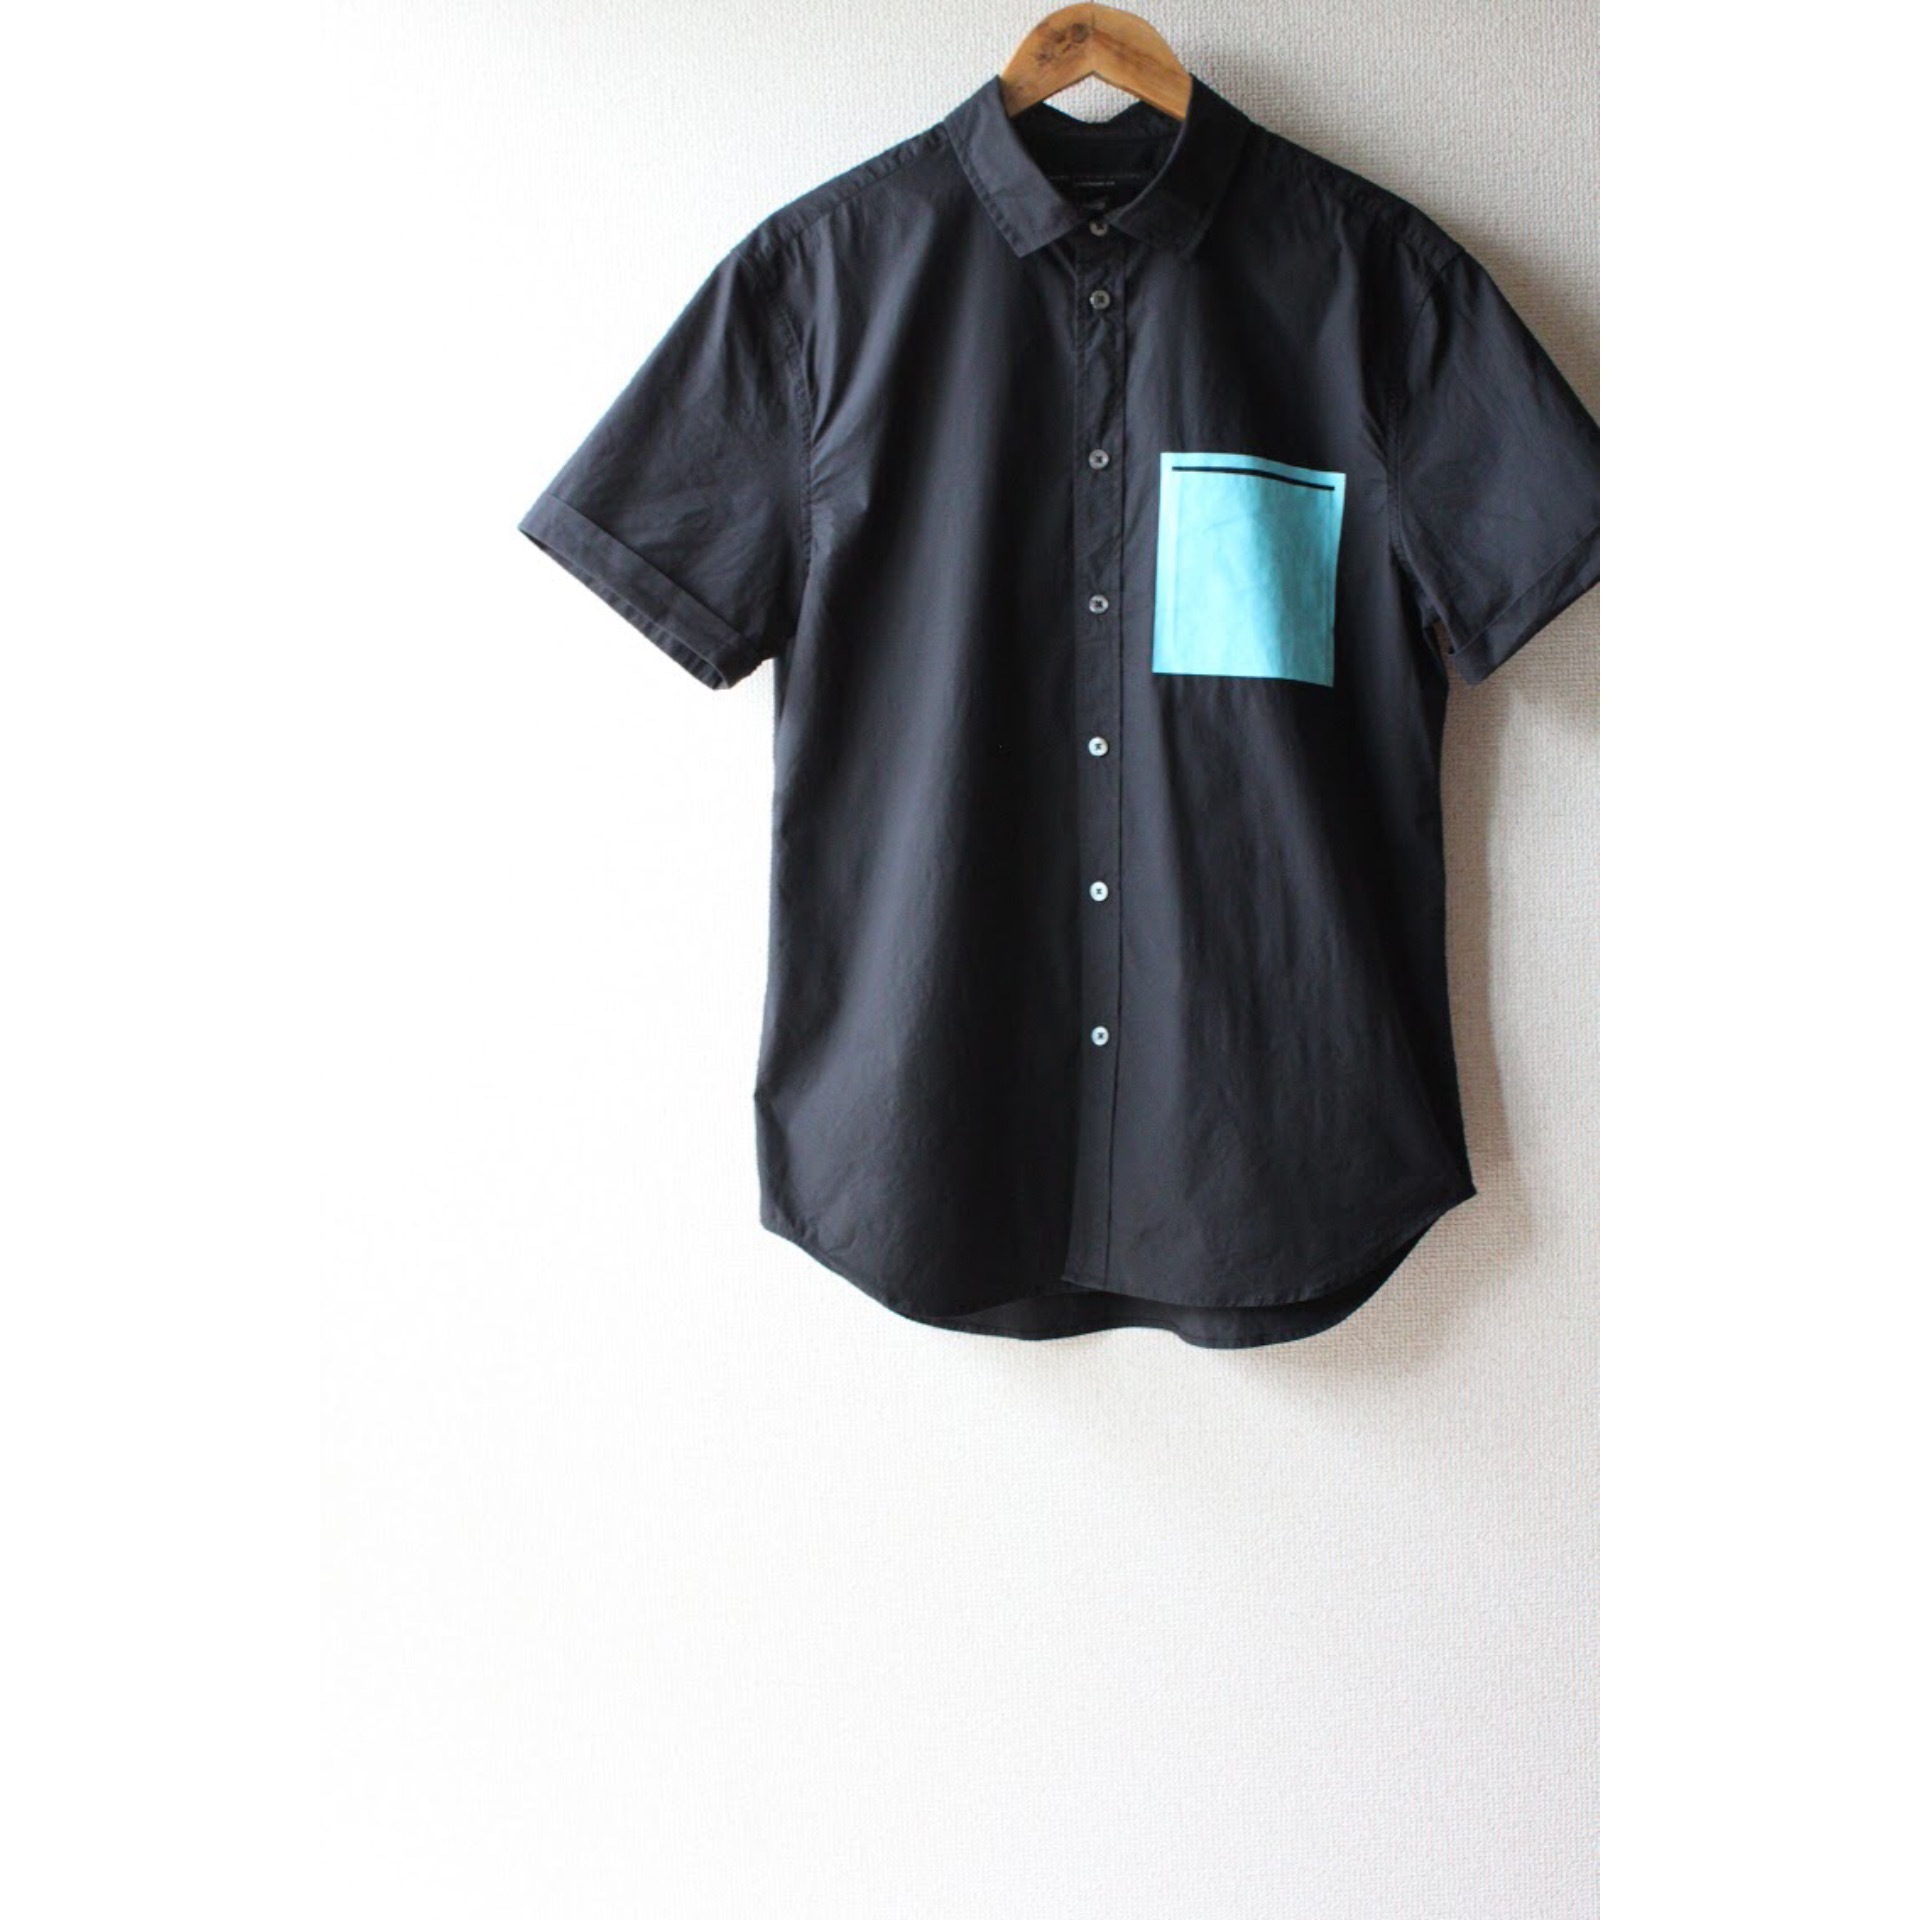 Short sleeve shirt by Marc By Marc Jacobs